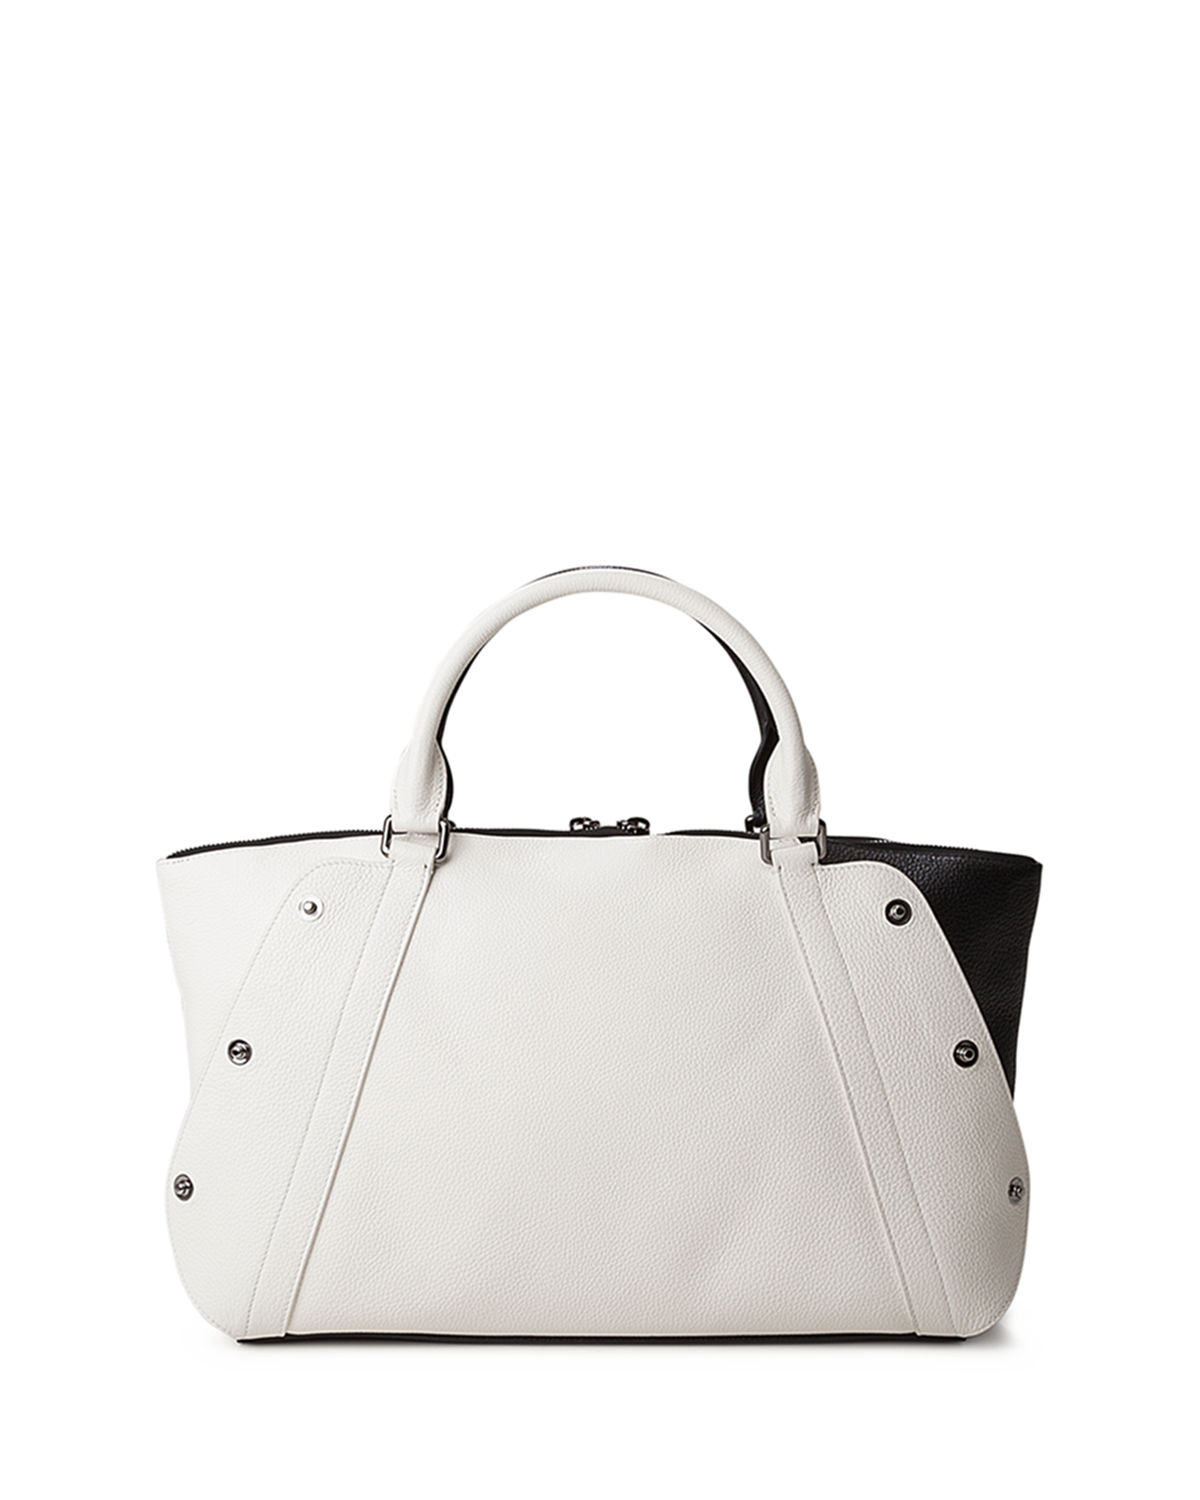 Aimee Small Bicolor Leather Satchel Bag